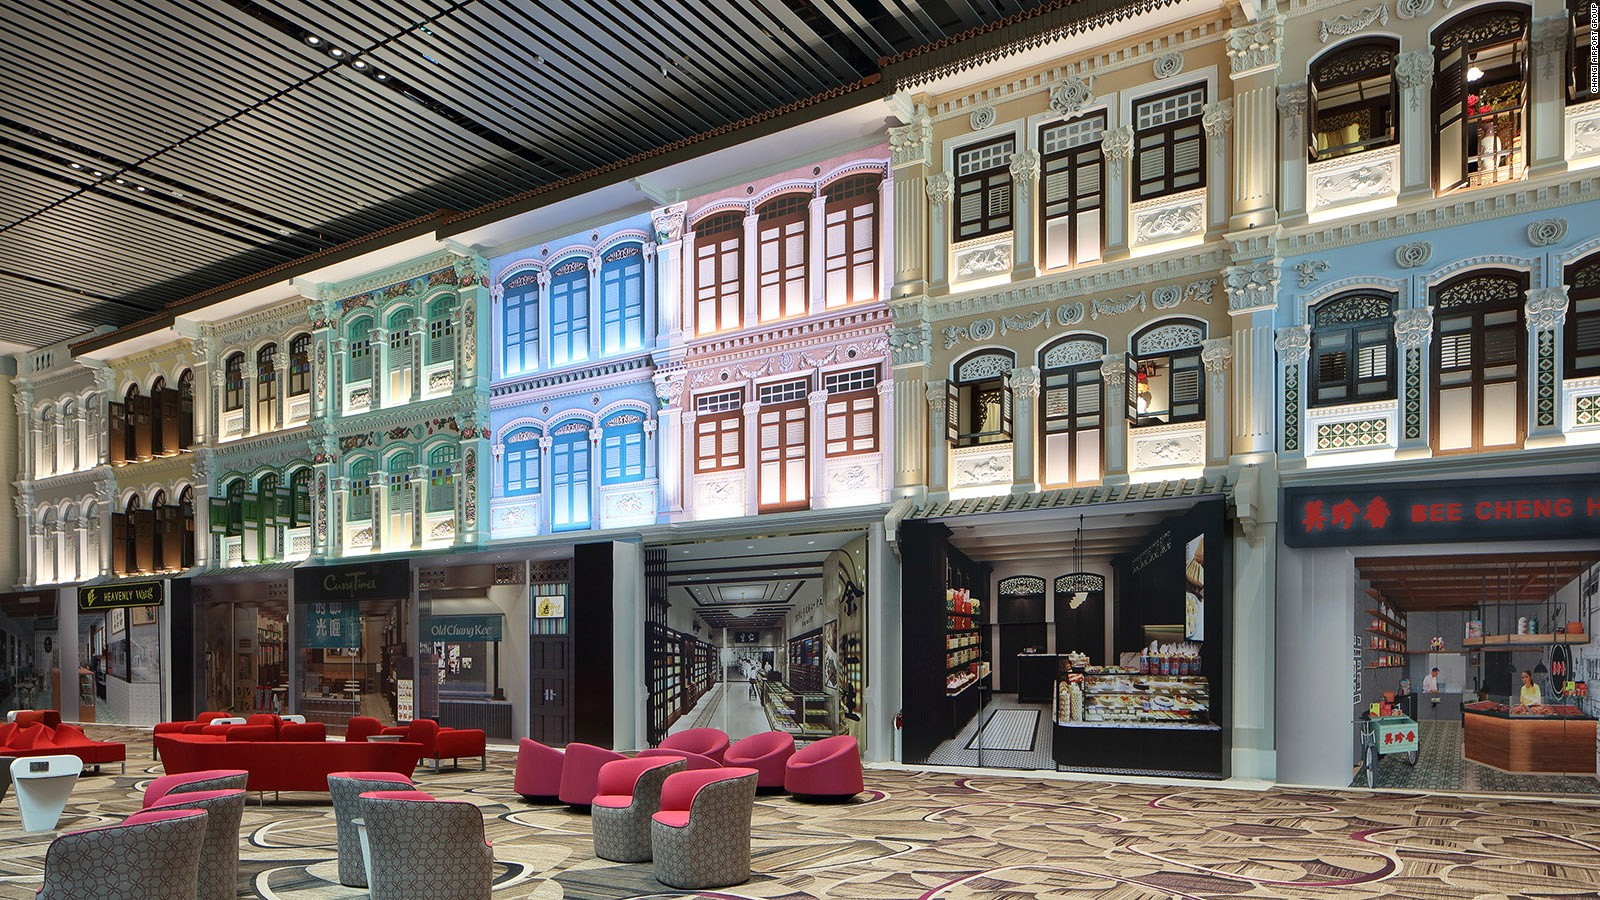 Singapore Changi Airport's new terminal is dazzling | CNN Travel